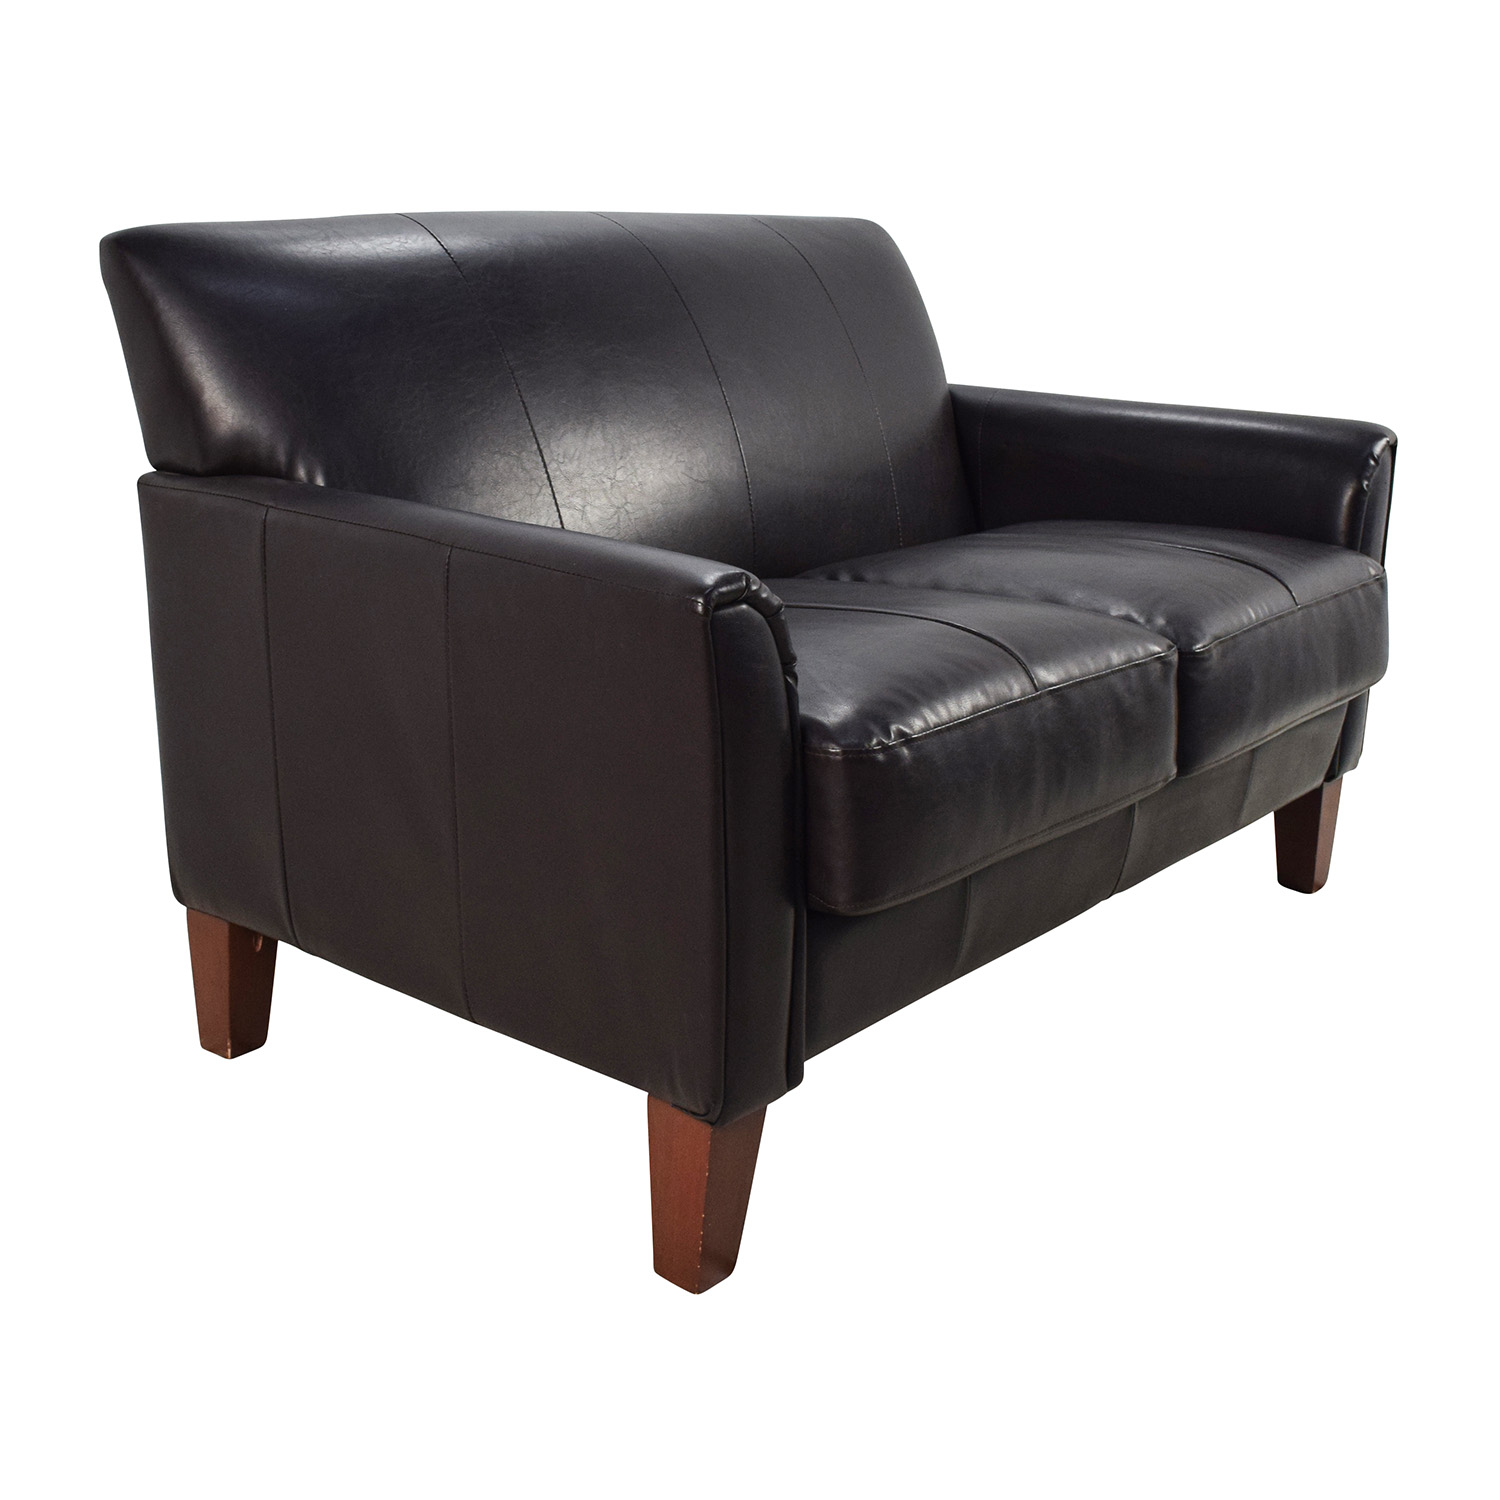 Leather Loveseat 53 Off Black Leather Loveseat Sofas